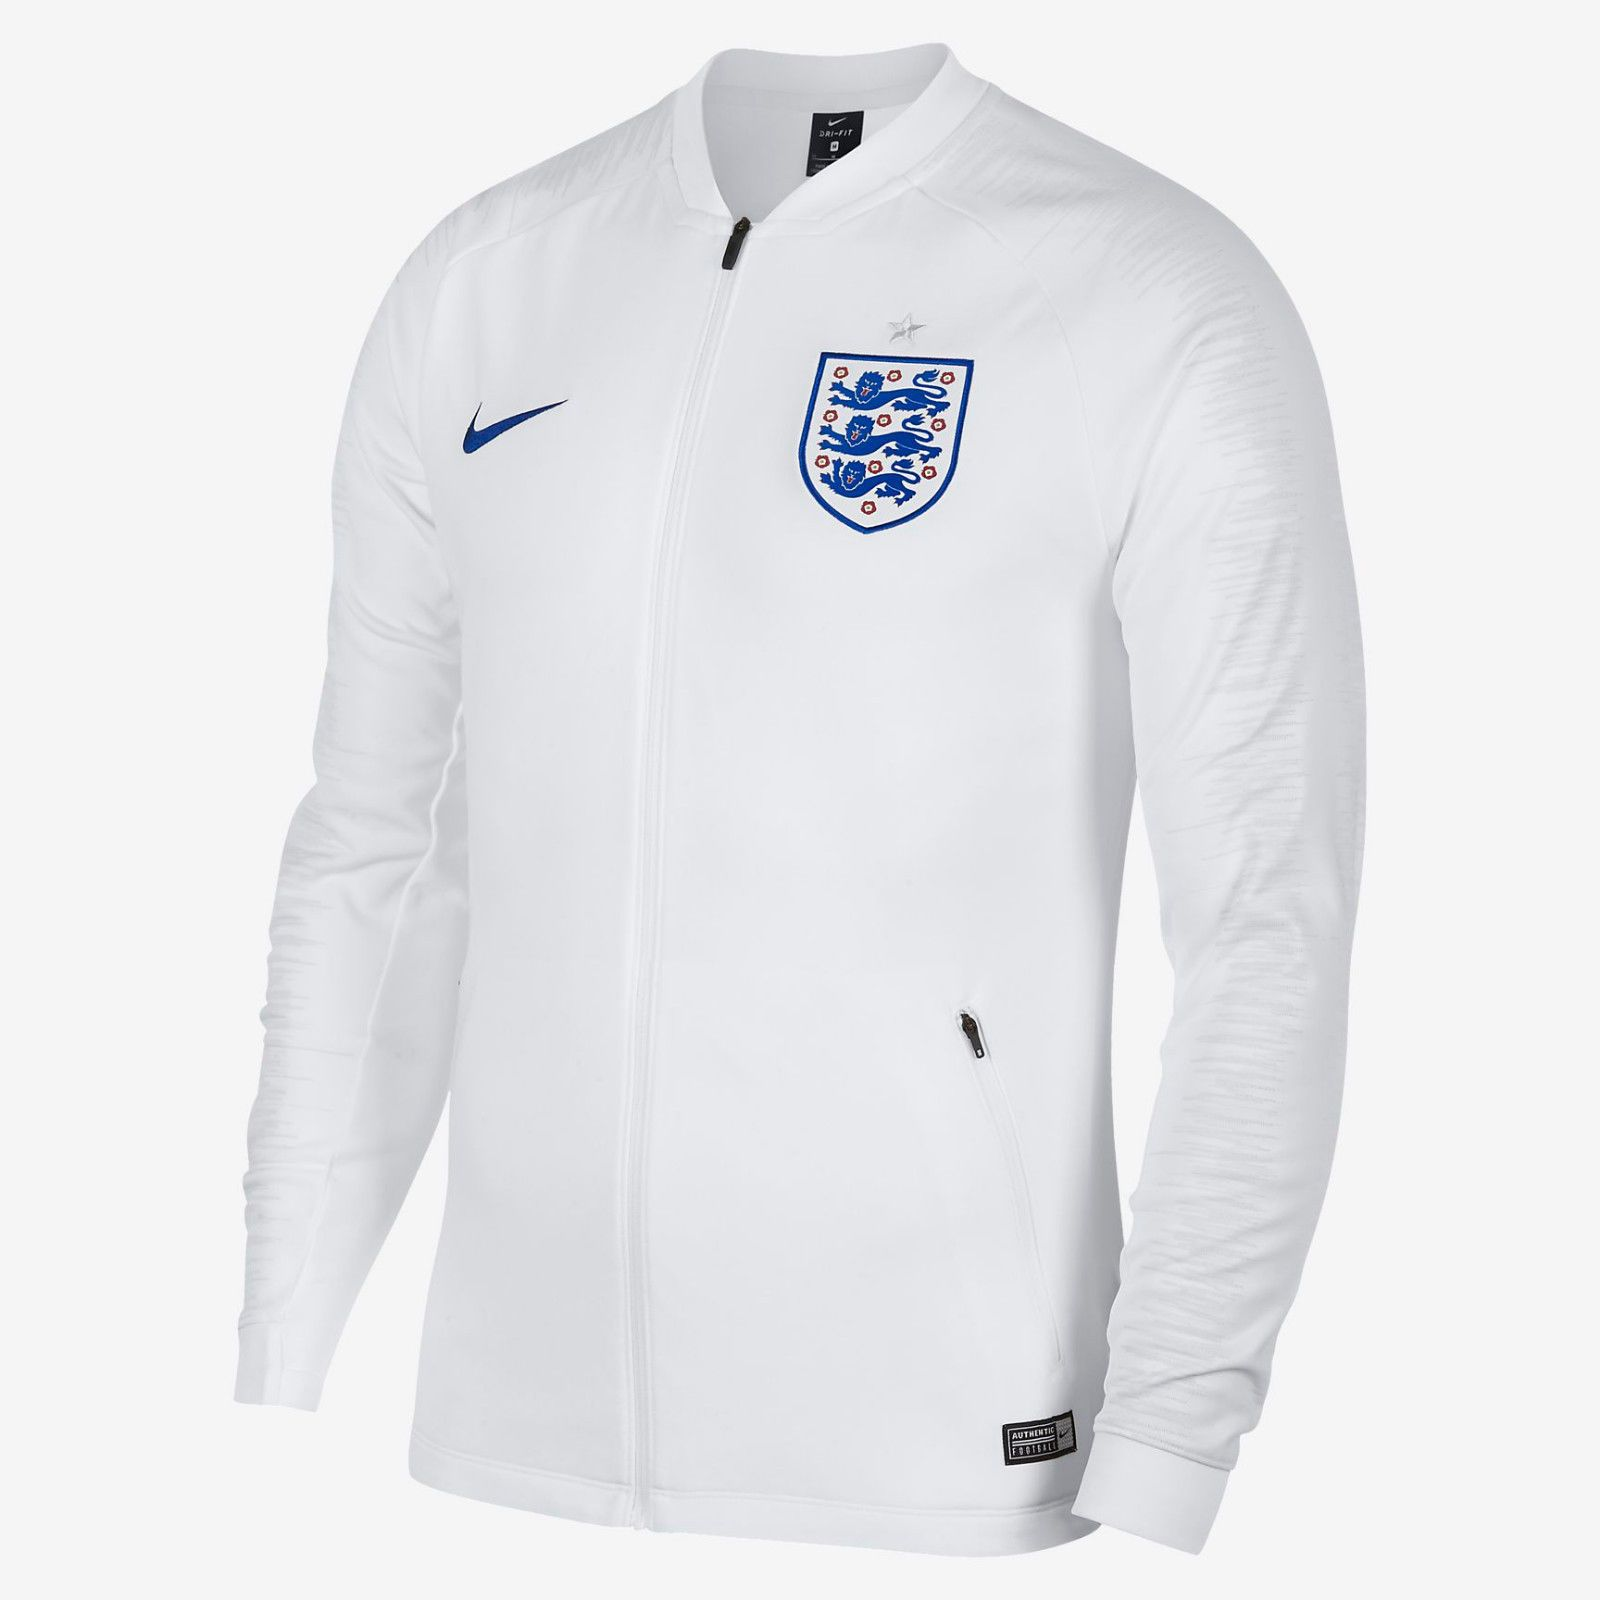 Nike 2018 World Cup England Mens Size M Anthen Jacket 893588-101 Discount  Price 75.99 Free Shipping Buy it Now 9e198e821